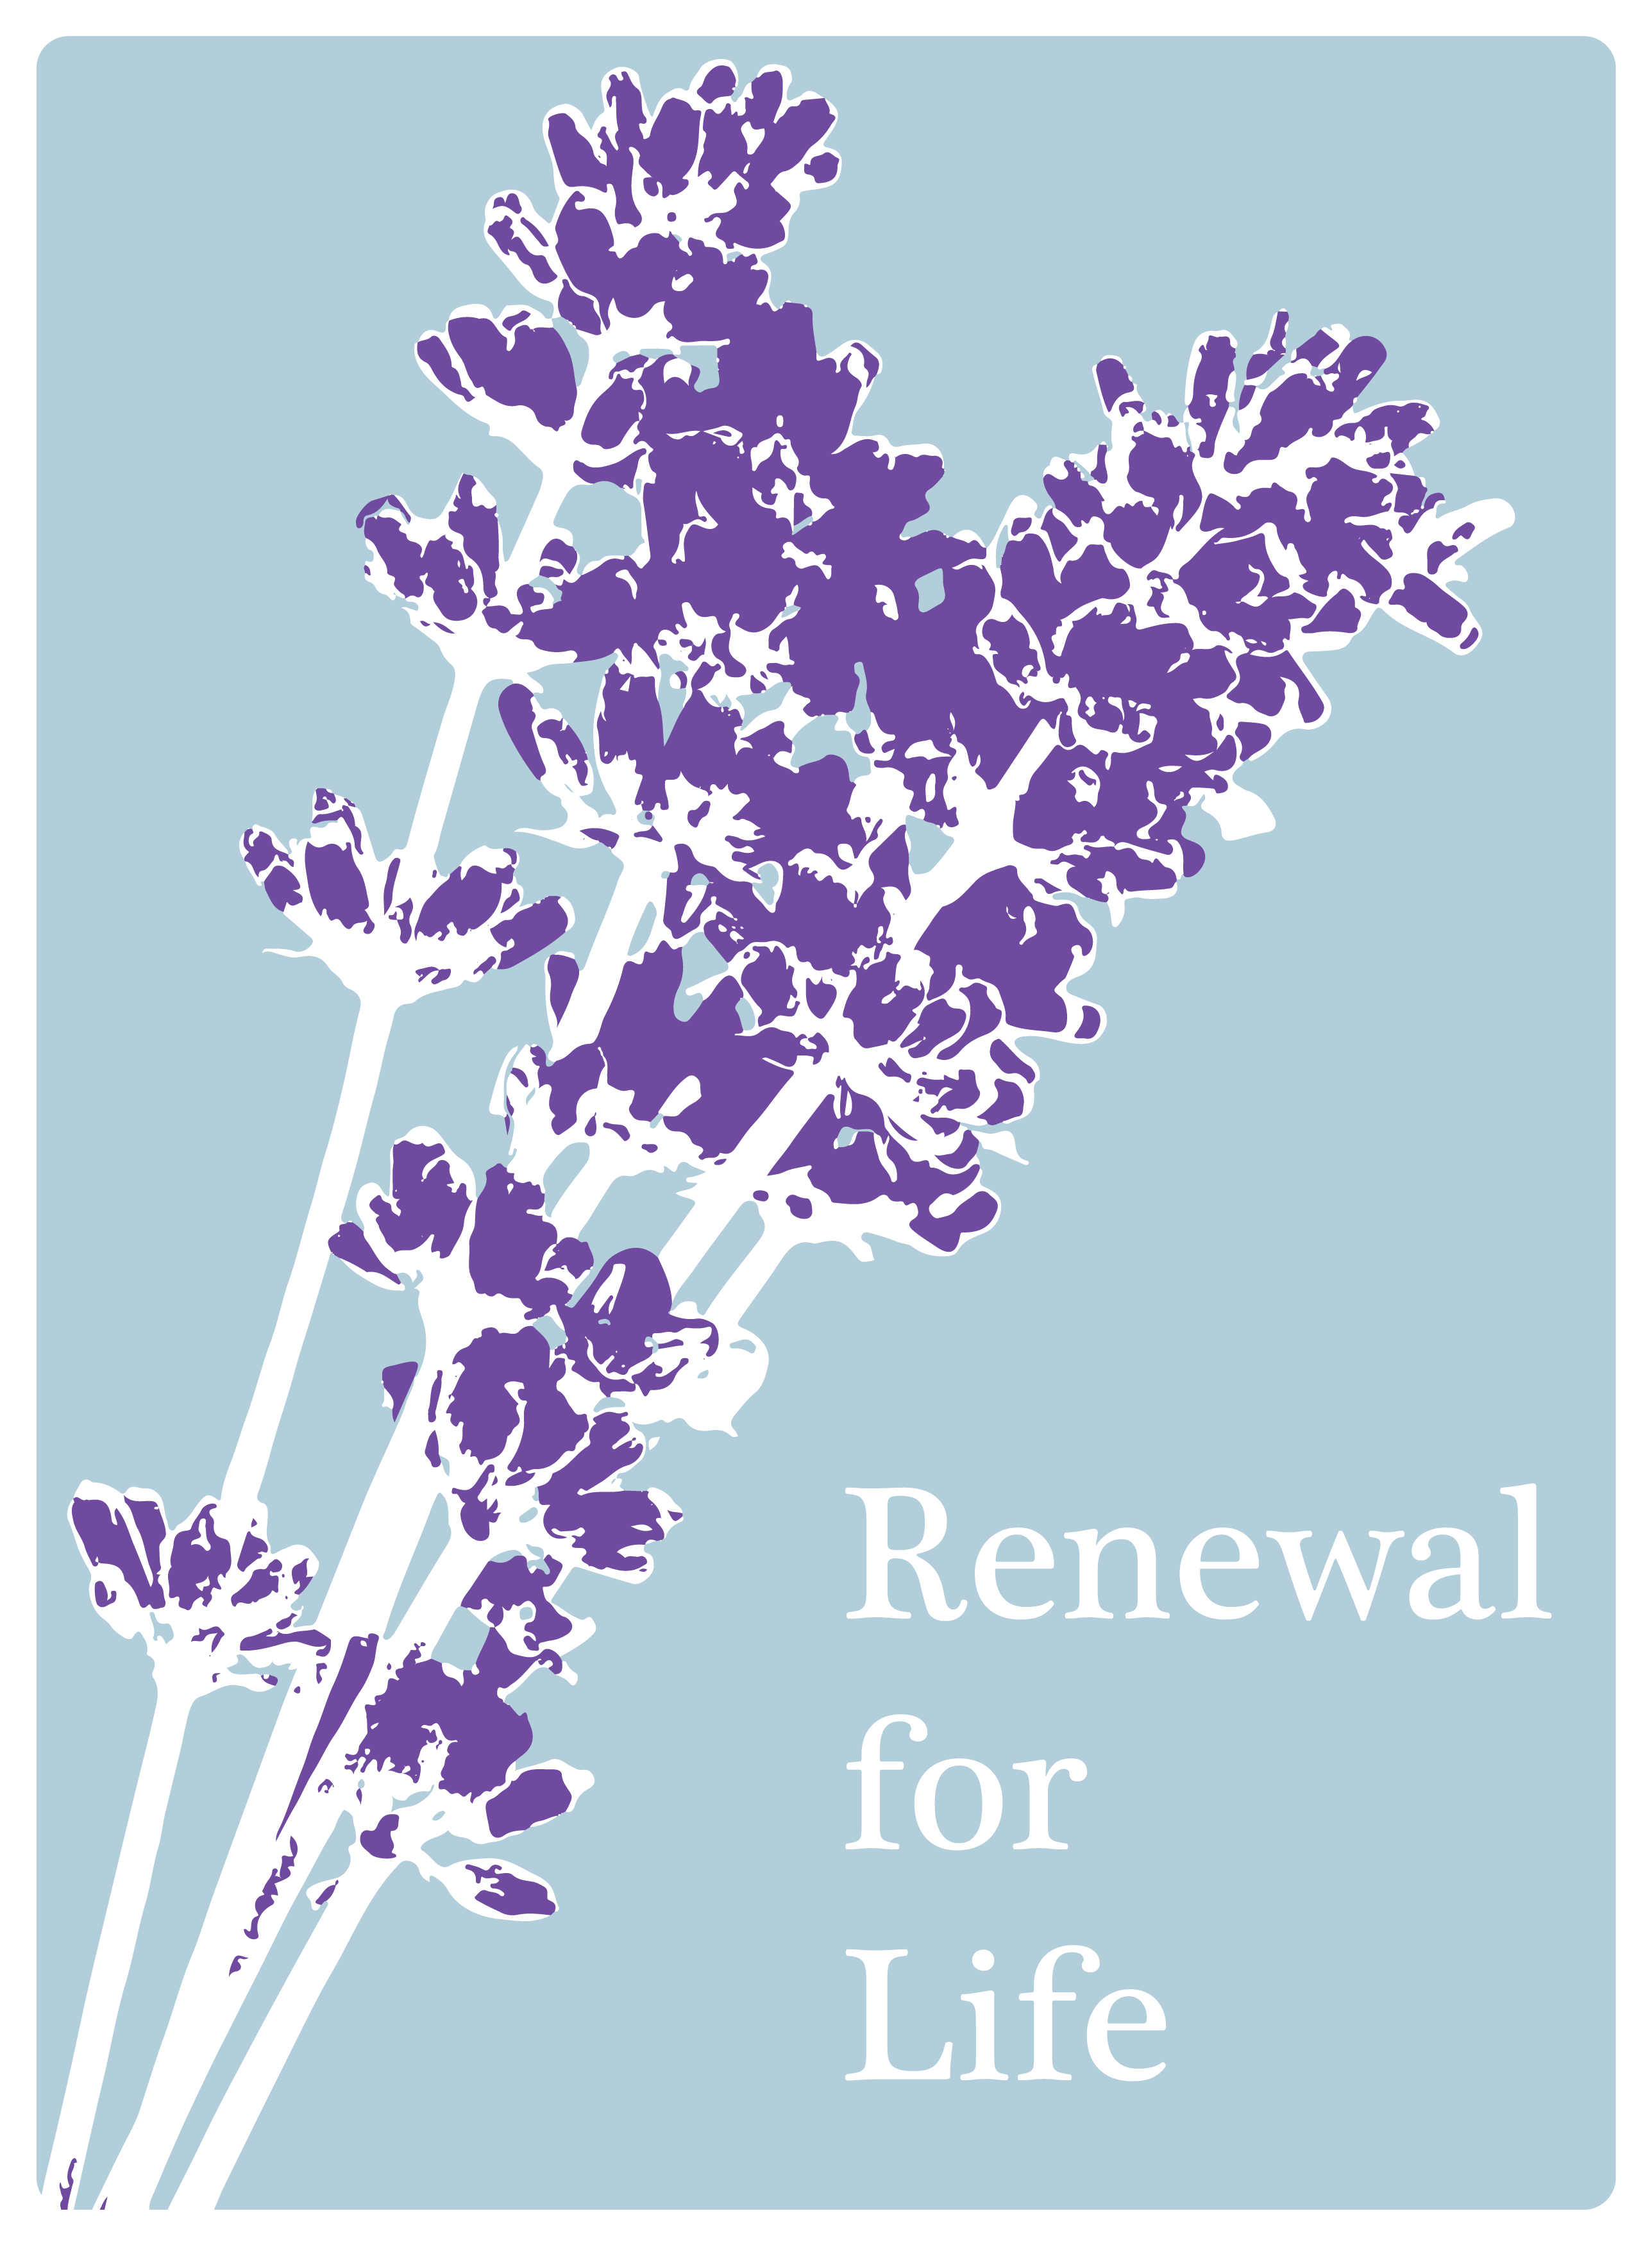 Renewal for Life!